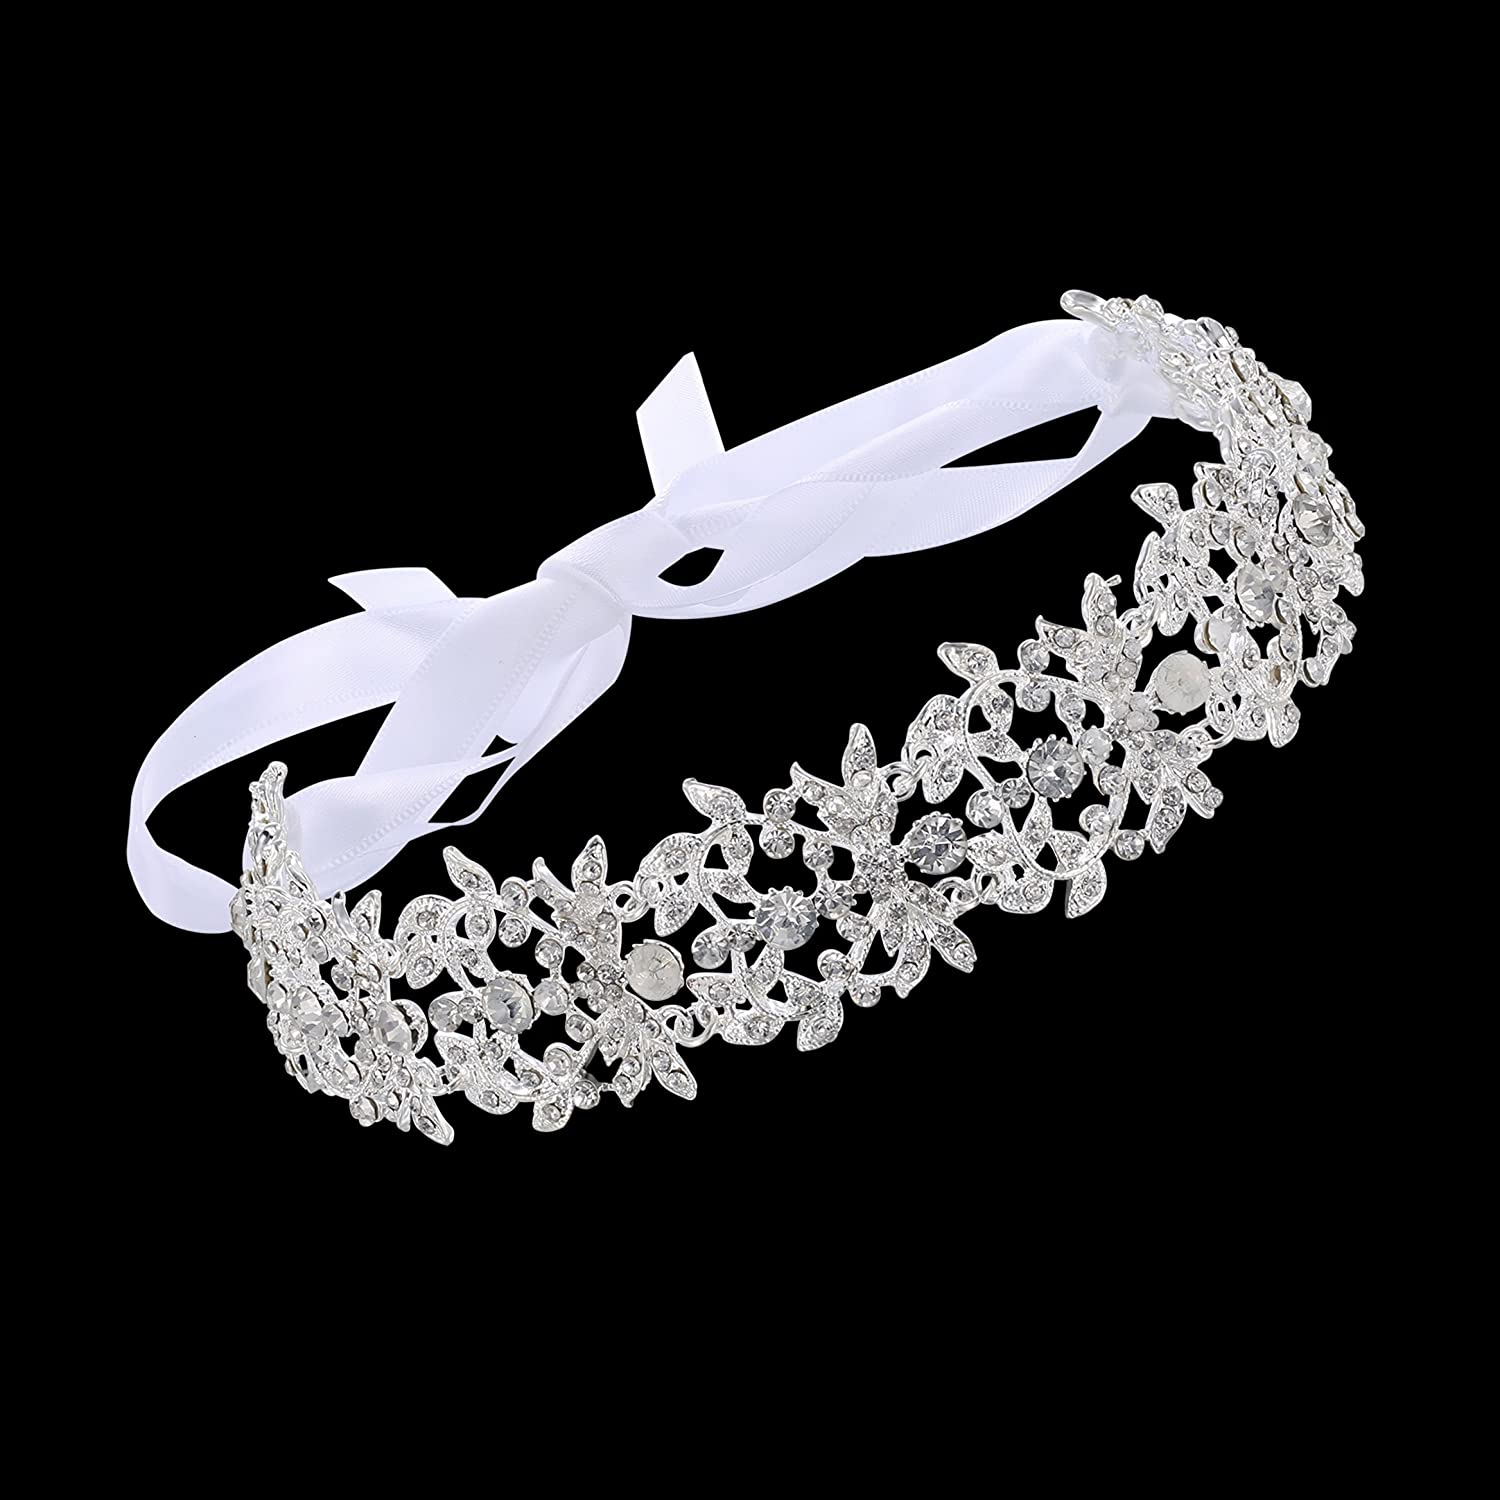 Babeyond® Bridal Handmade Luxury Rhinestone Wedding Party Hairband Hair Band Austrian Crystal Floral Leaf with Lace Ribbon NA